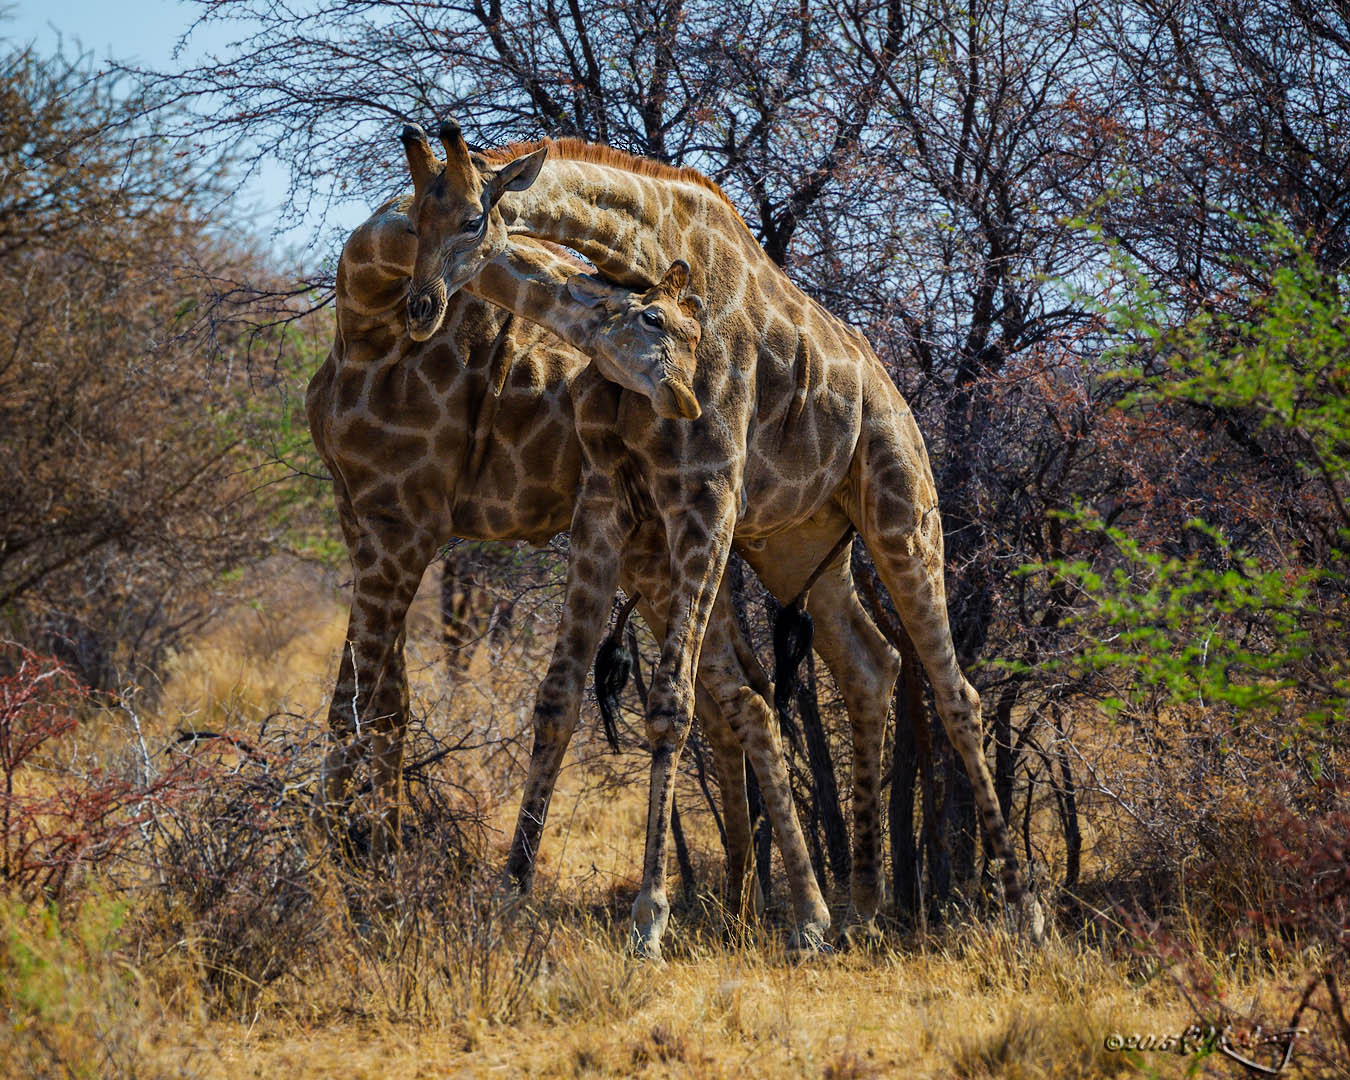 Reticulated_Giraffe_males_fighting